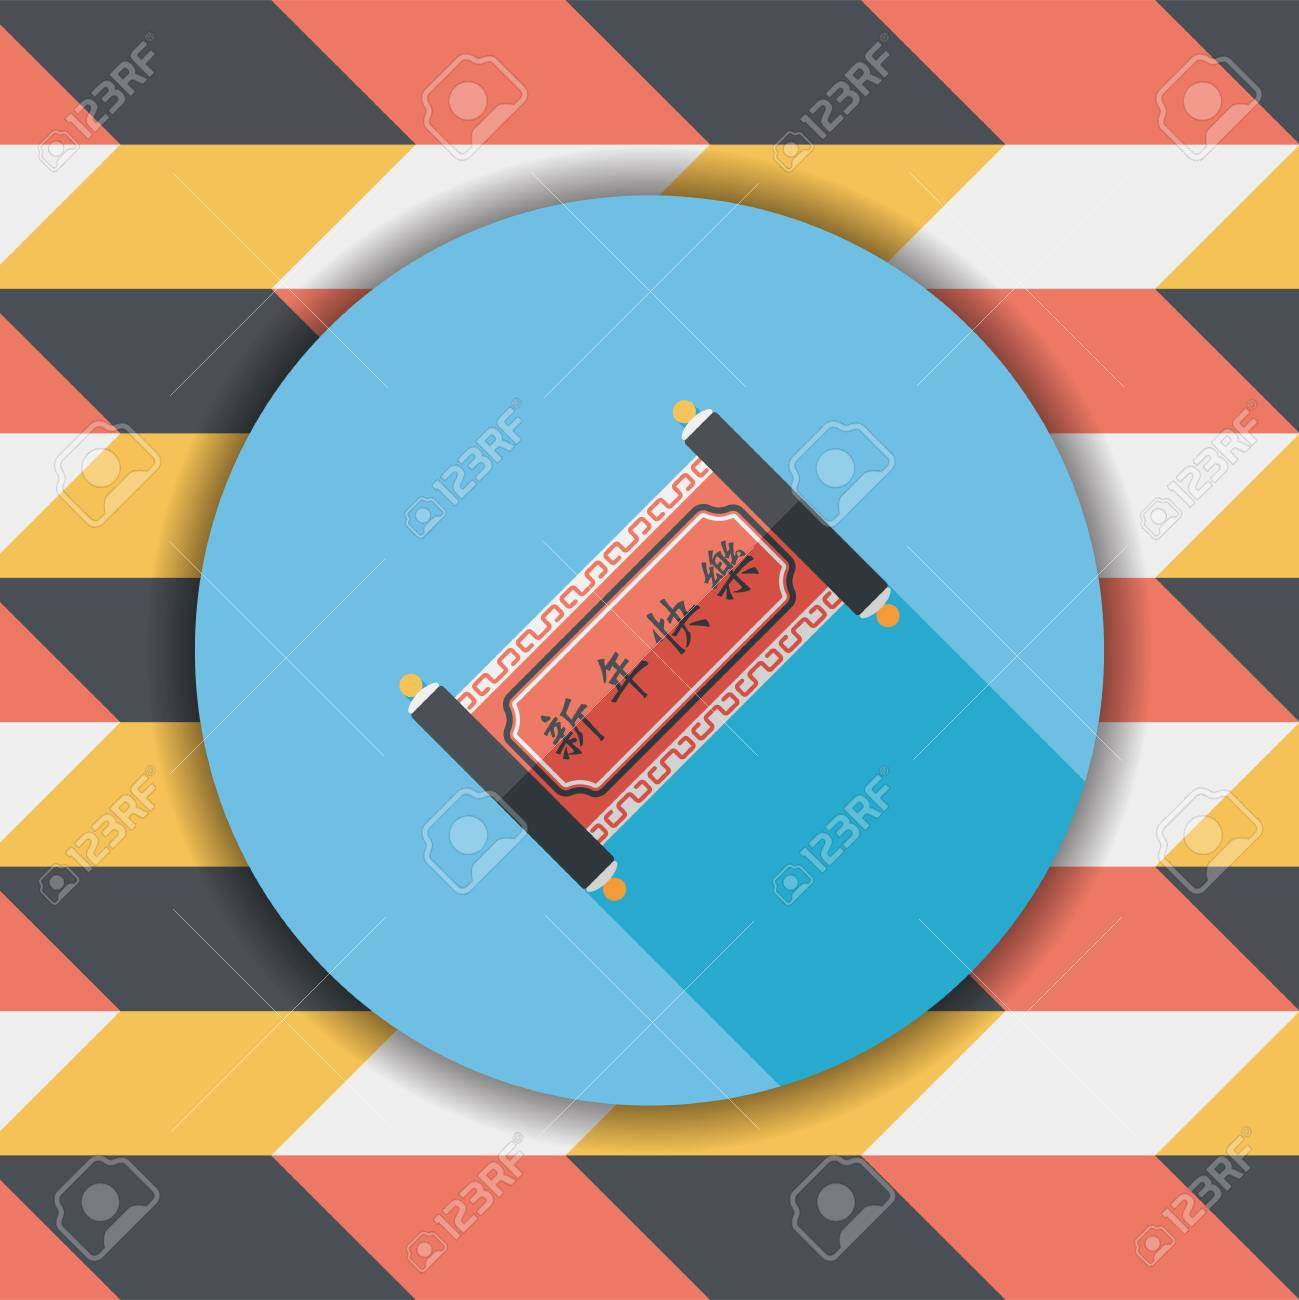 036d88e8d Chinese New Year flat icon with long shadow,eps10, Chinese words calligraphy  scrolls means